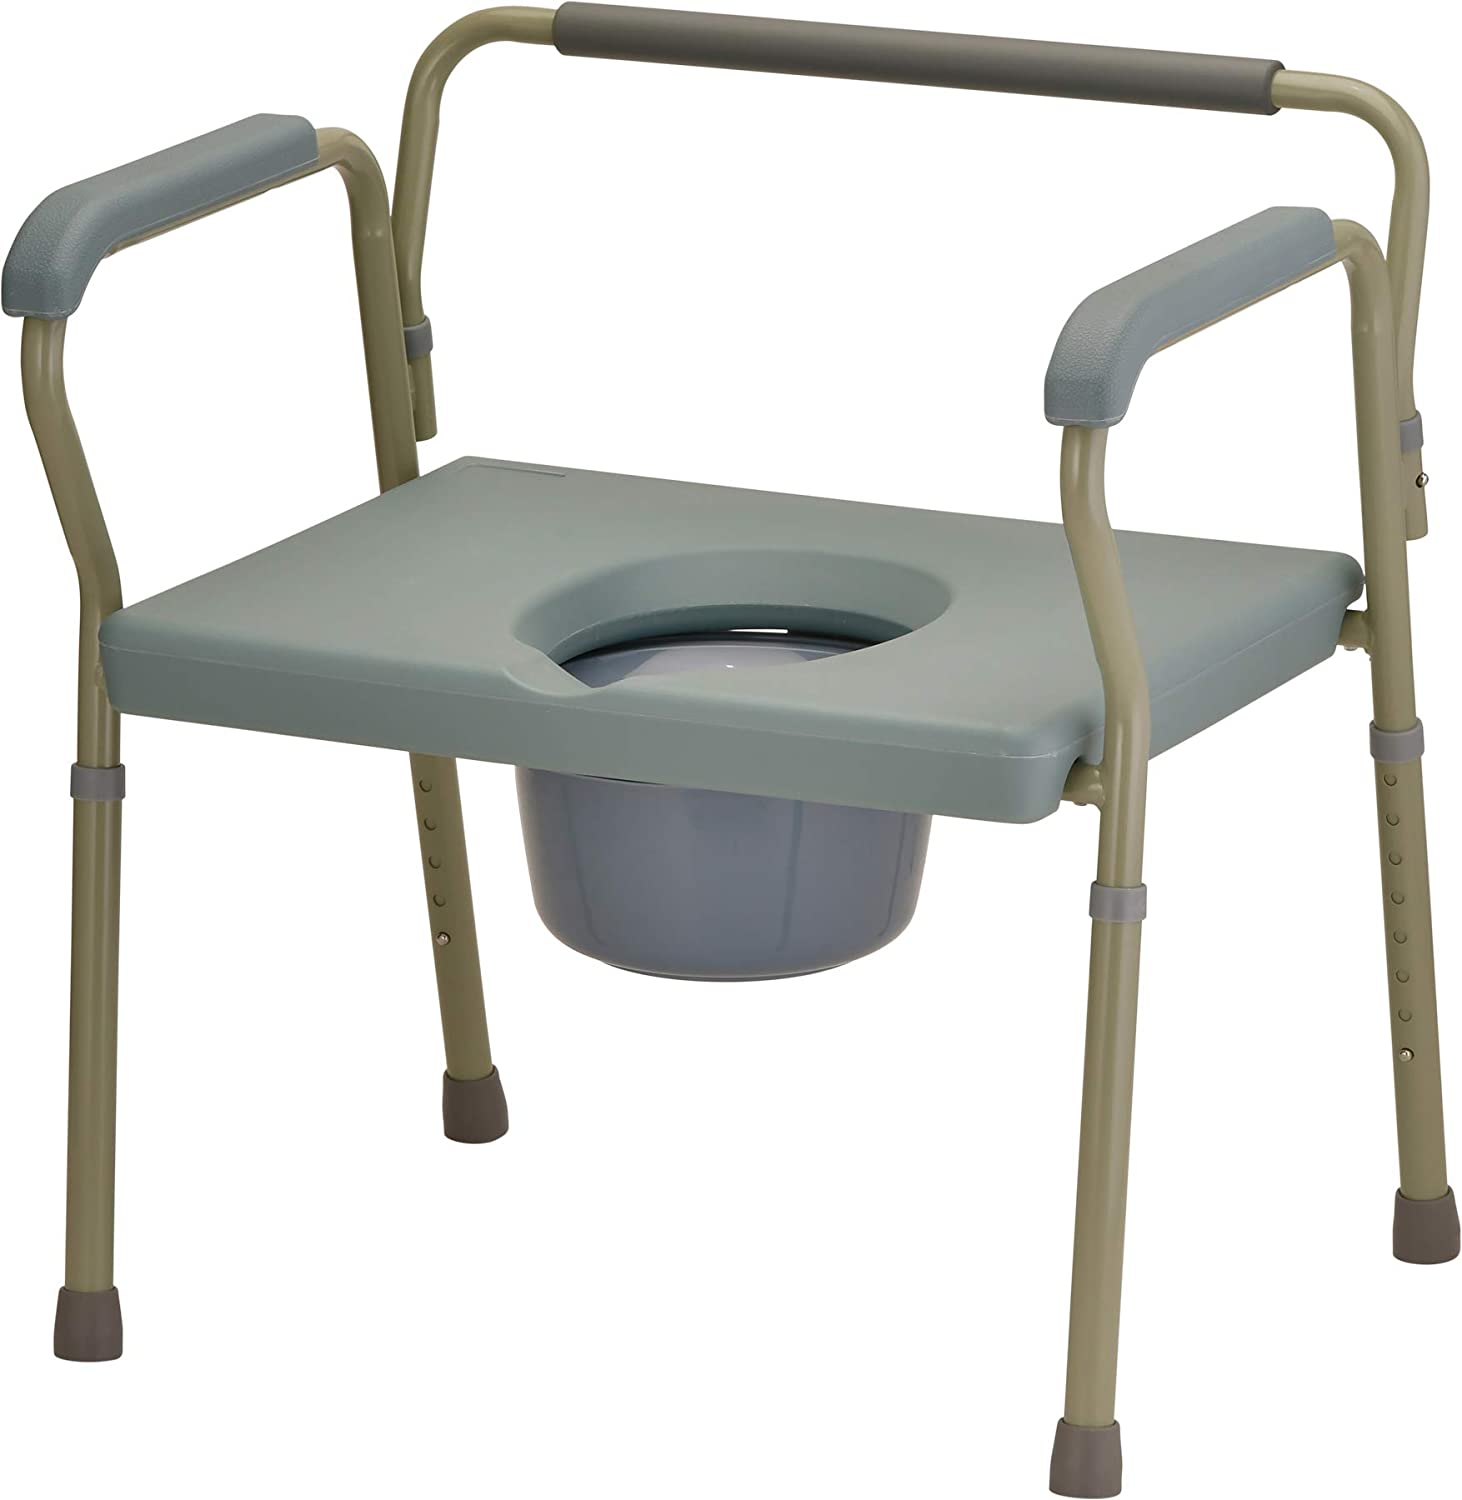 NOVA Heavy Duty Bedside Commode Animer and price revision Extra lb. Wide Weight Seat Free shipping on posting reviews 500